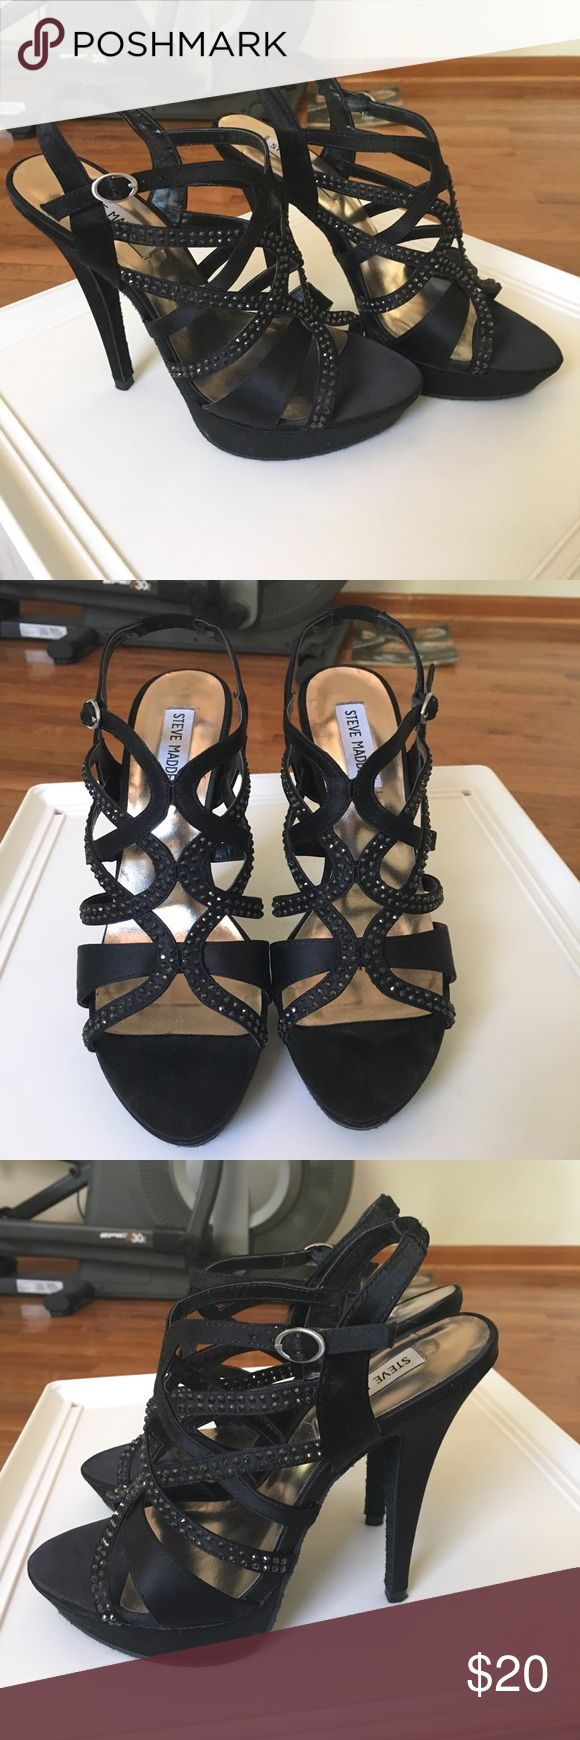 Steve Madden Black Heels Steve Madden Black Heels with gems / rhinestones. Has an inch platform. Very comfy. Perfect for a special occasion such as prom, homecoming, formal, or a wedding. Worn twice. Size 7.5 but will fit an 8 (I am size 8 - 8.5). Steve Madden Shoes Heels